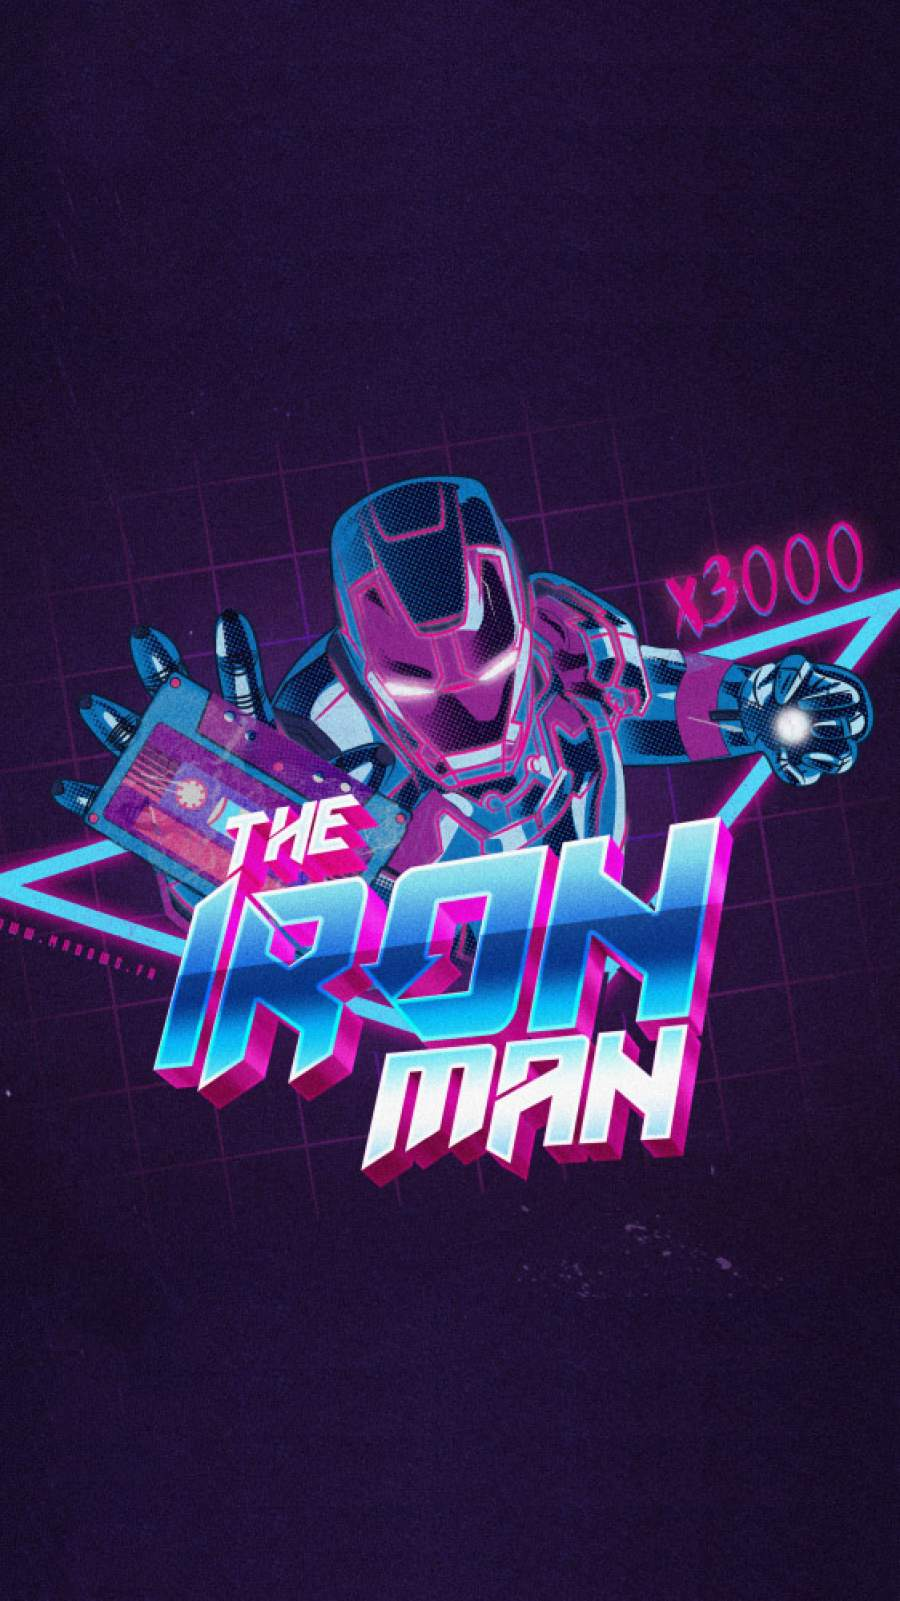 The Iron Man Love You 3000 iPhone Wallpaper